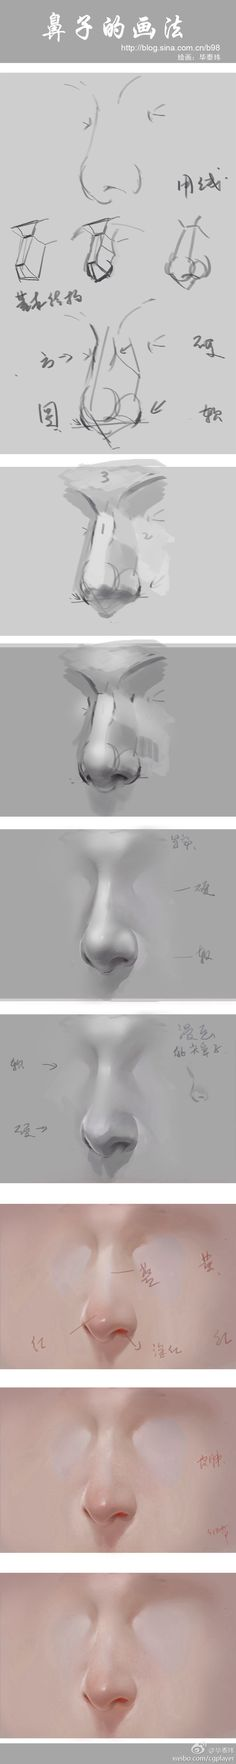 Planes of the nose Digital Art Tutorial, Digital Painting Tutorials, Art Tutorials, Drawing Skills, Drawing Techniques, Design Reference, Art Reference, Digital Drawing, Art Sketches